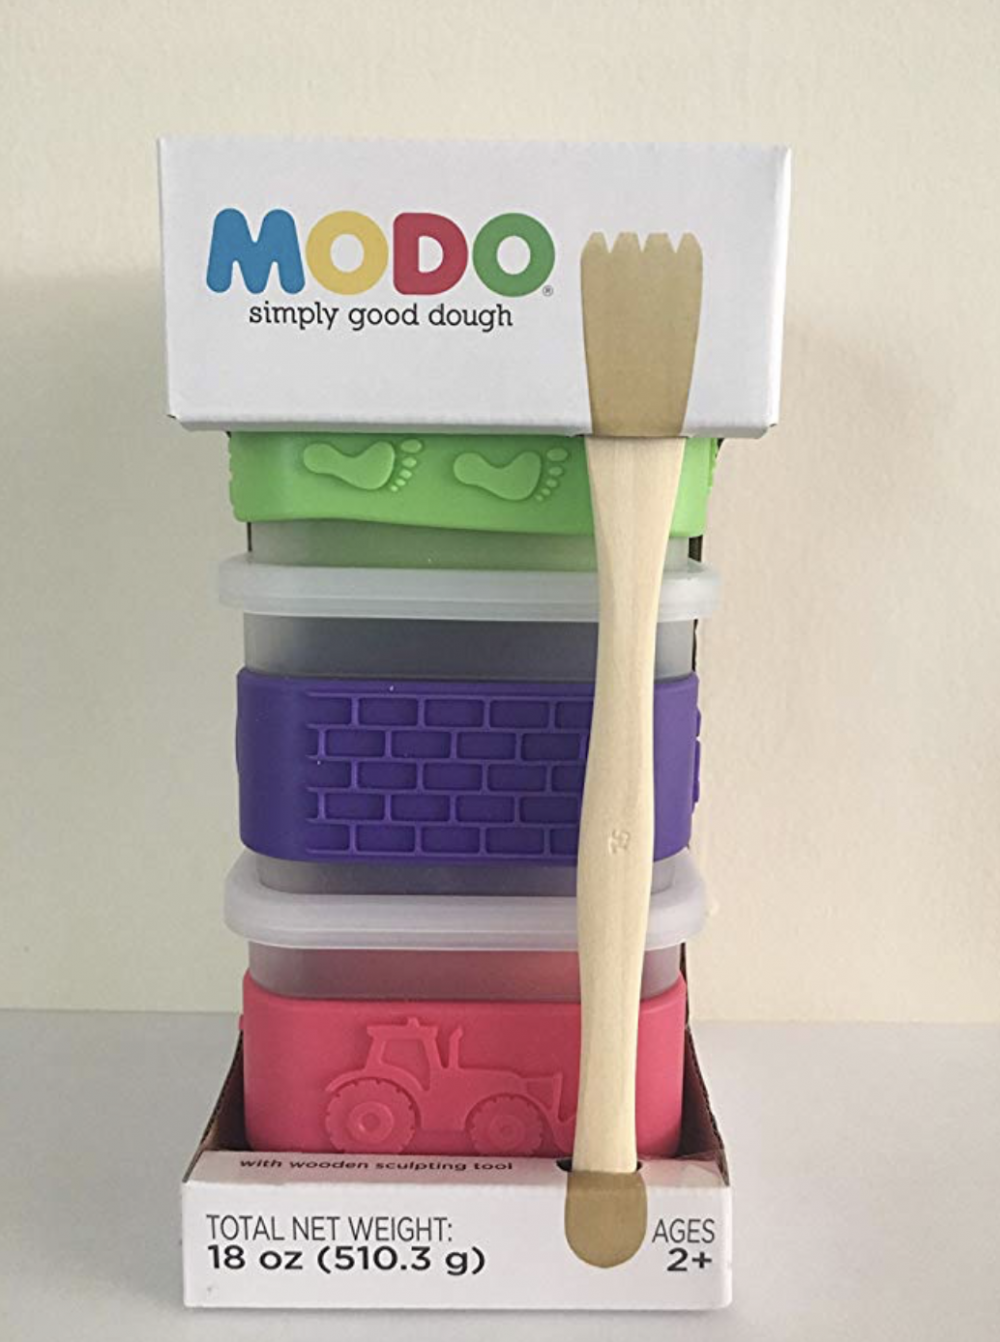 Stocking Stuffers For Toddlers - Modo Dough